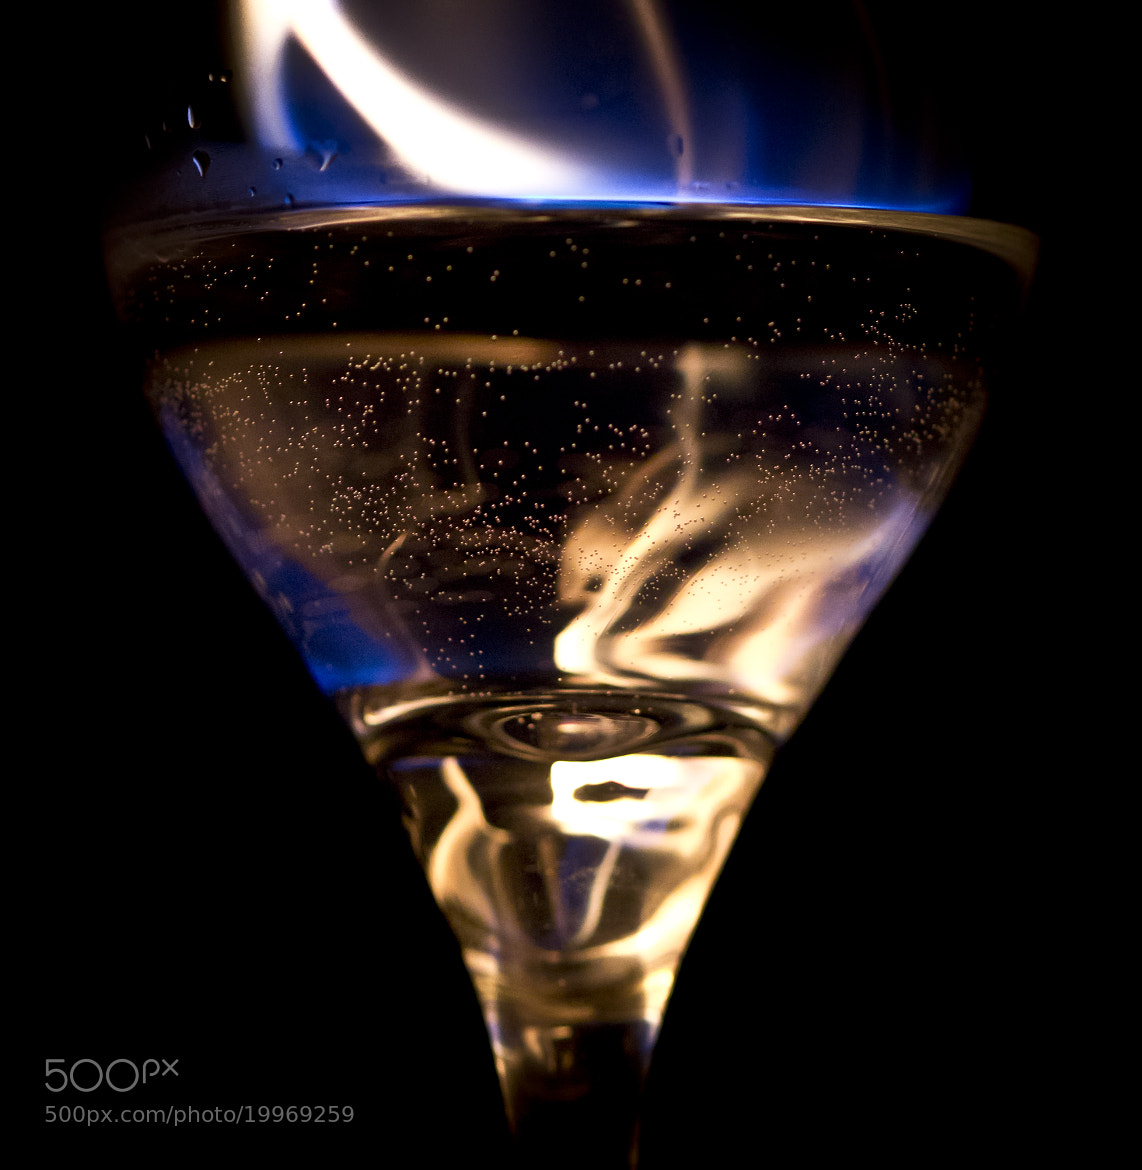 Photograph A Glass of Fire ... by Arun Agrawal on 500px